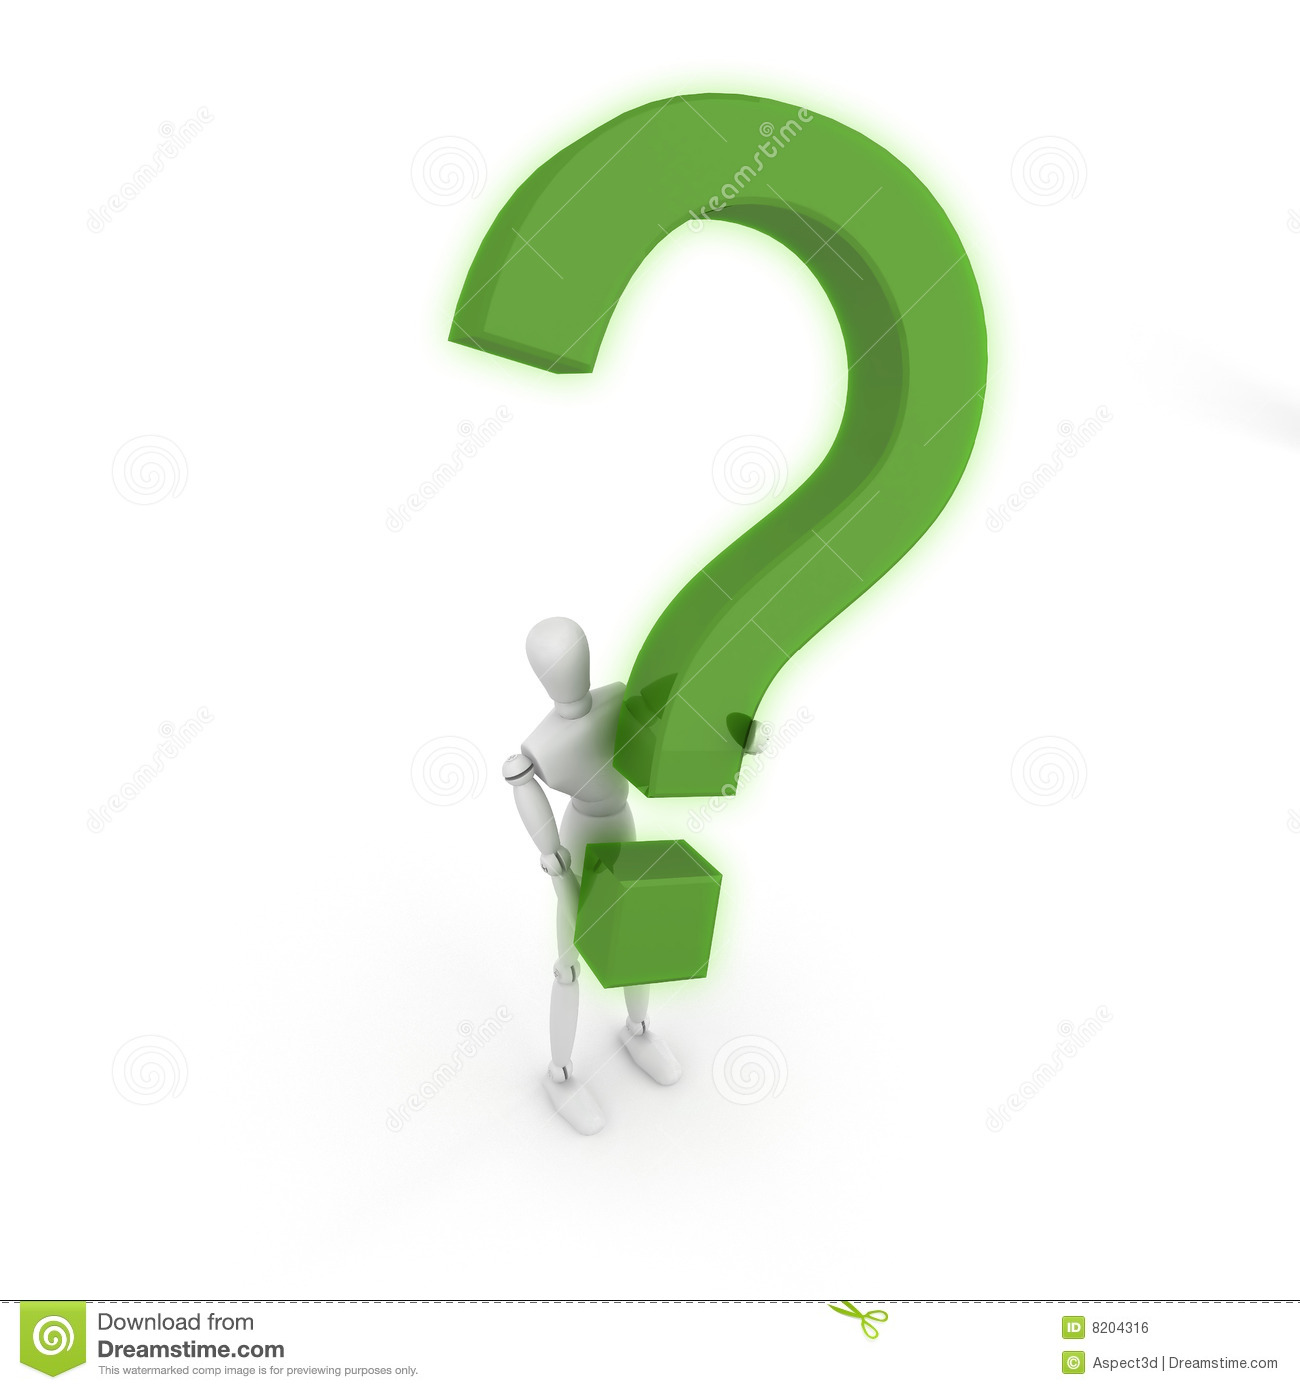 Question Mark Person Green Green Question Mark Clip ArtQuestion Mark Person Green